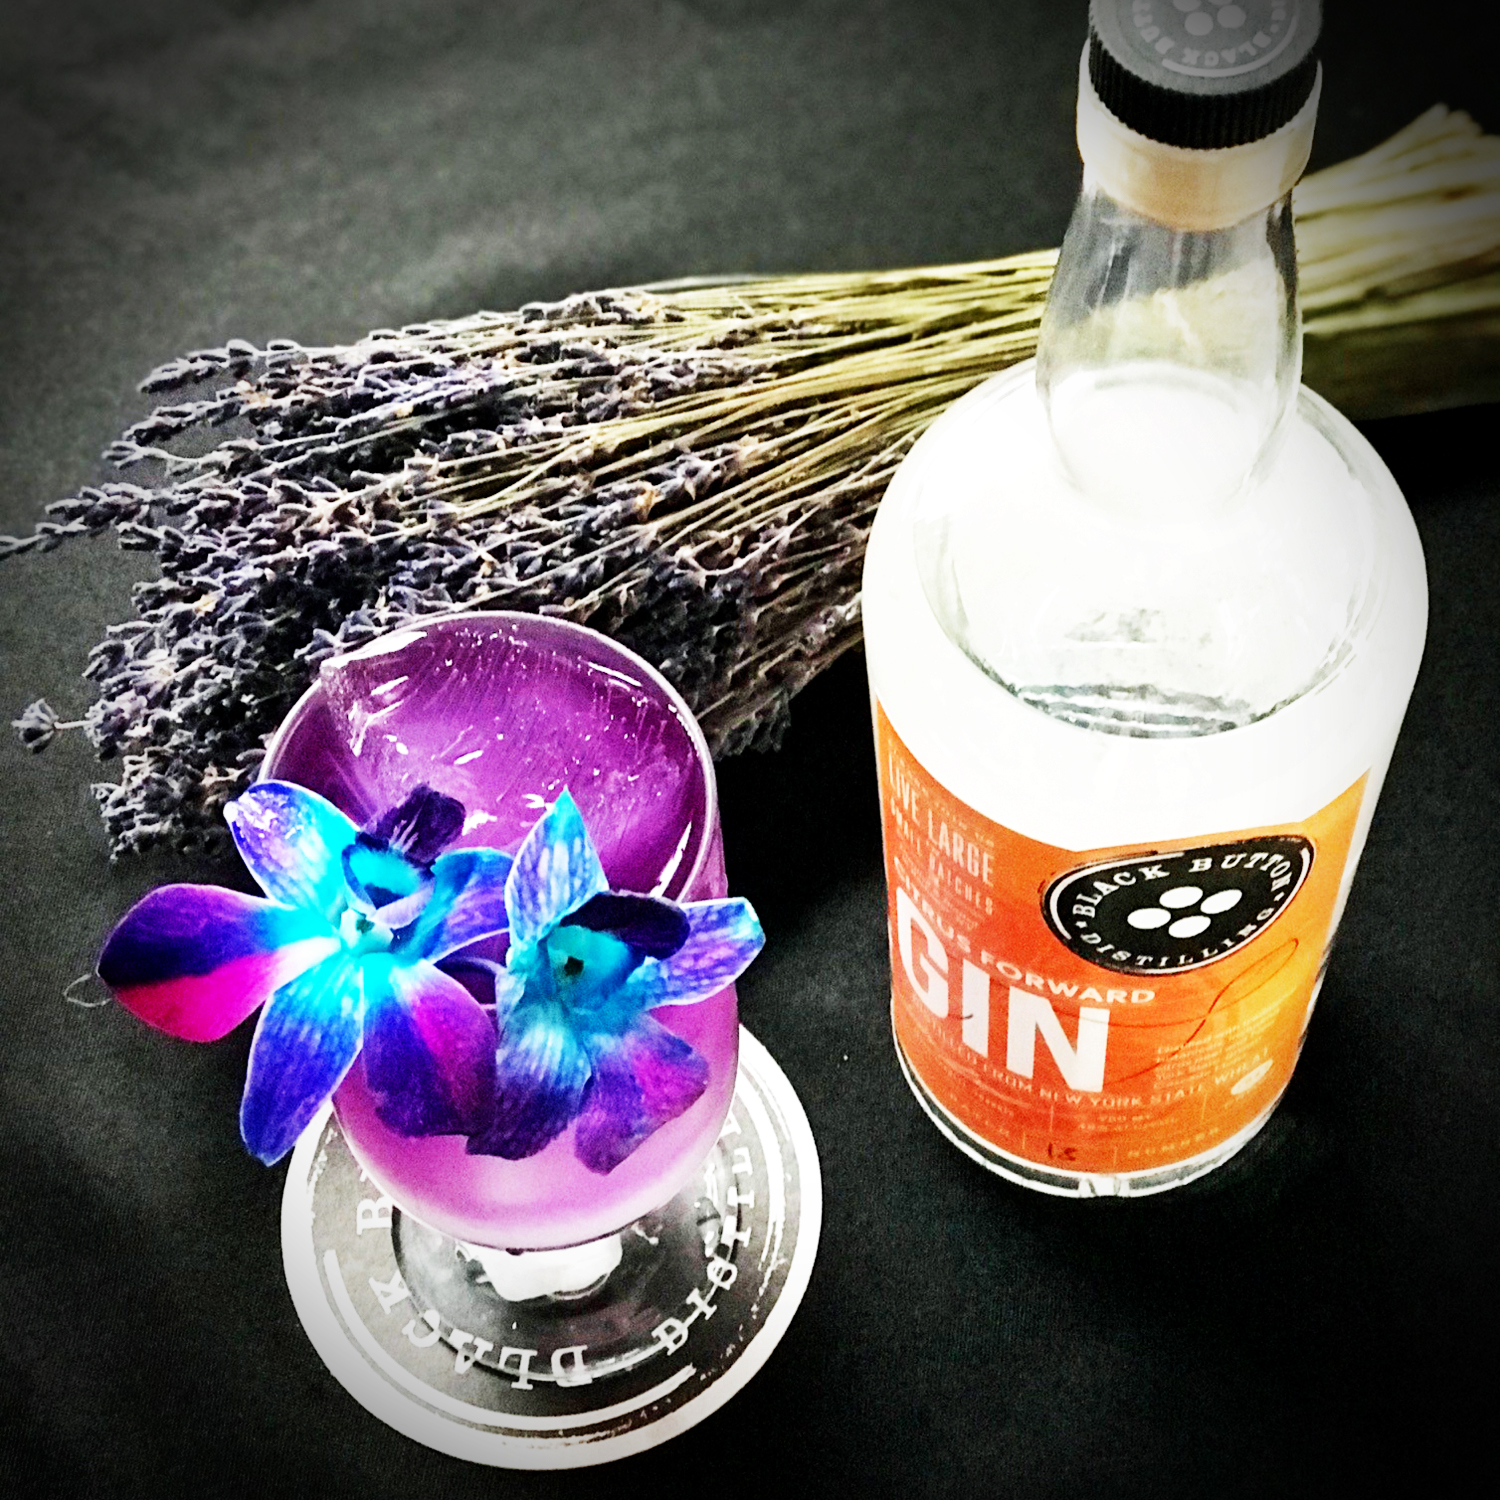 Black Button Distilling's award winning citrus forward gin paired with cocktail